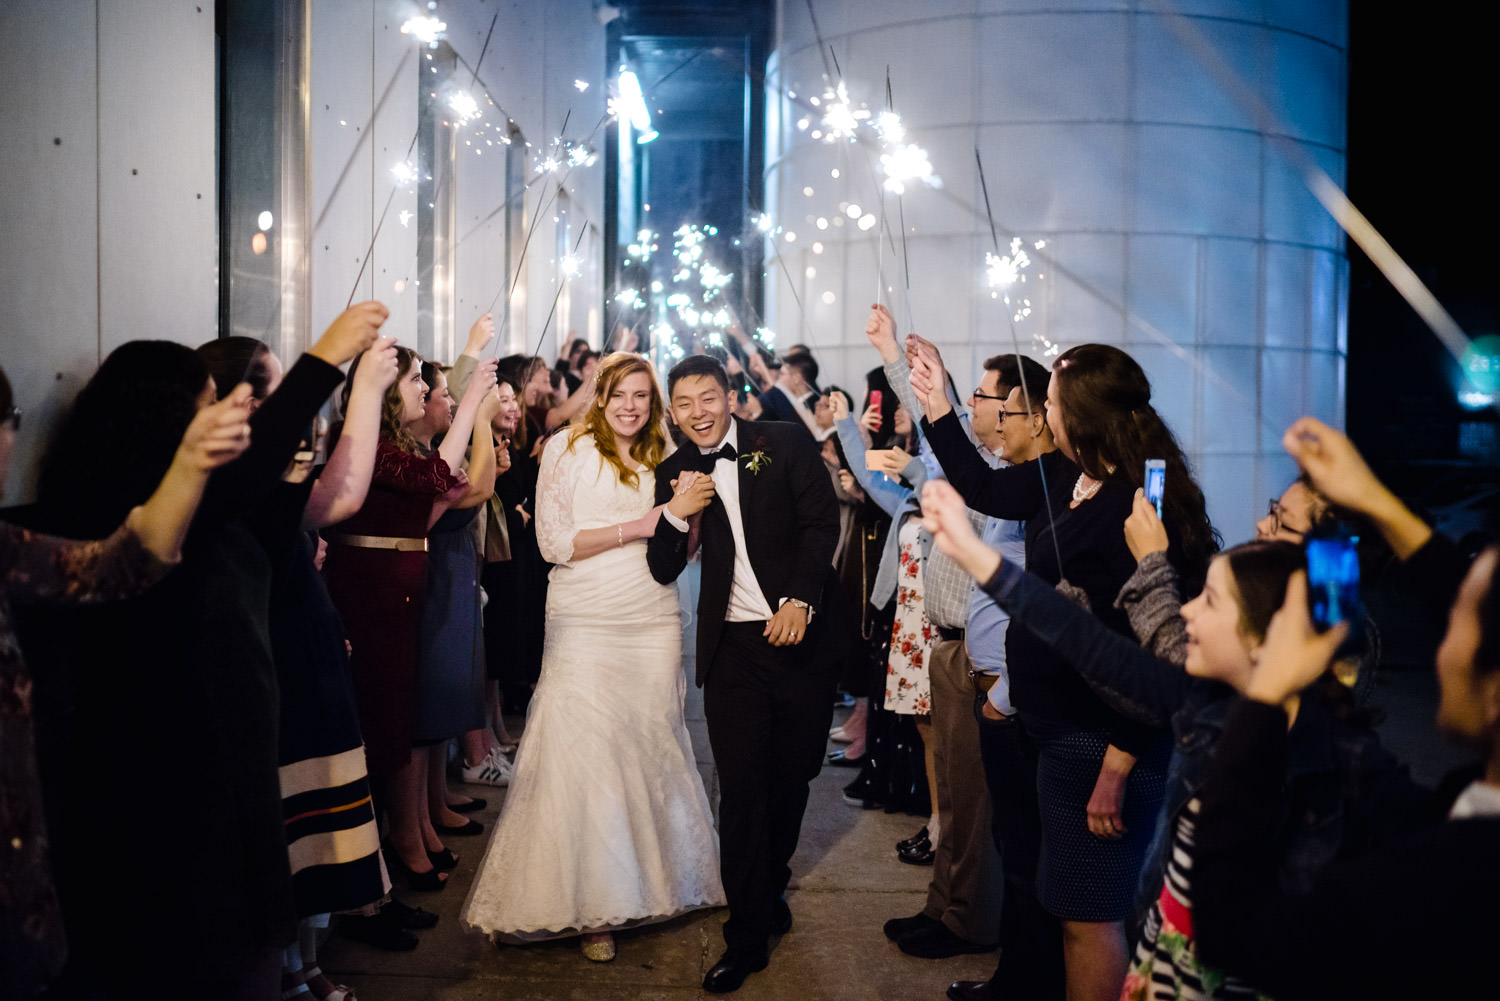 Pierpont Place wedding bride and groom exit to sparklers photo